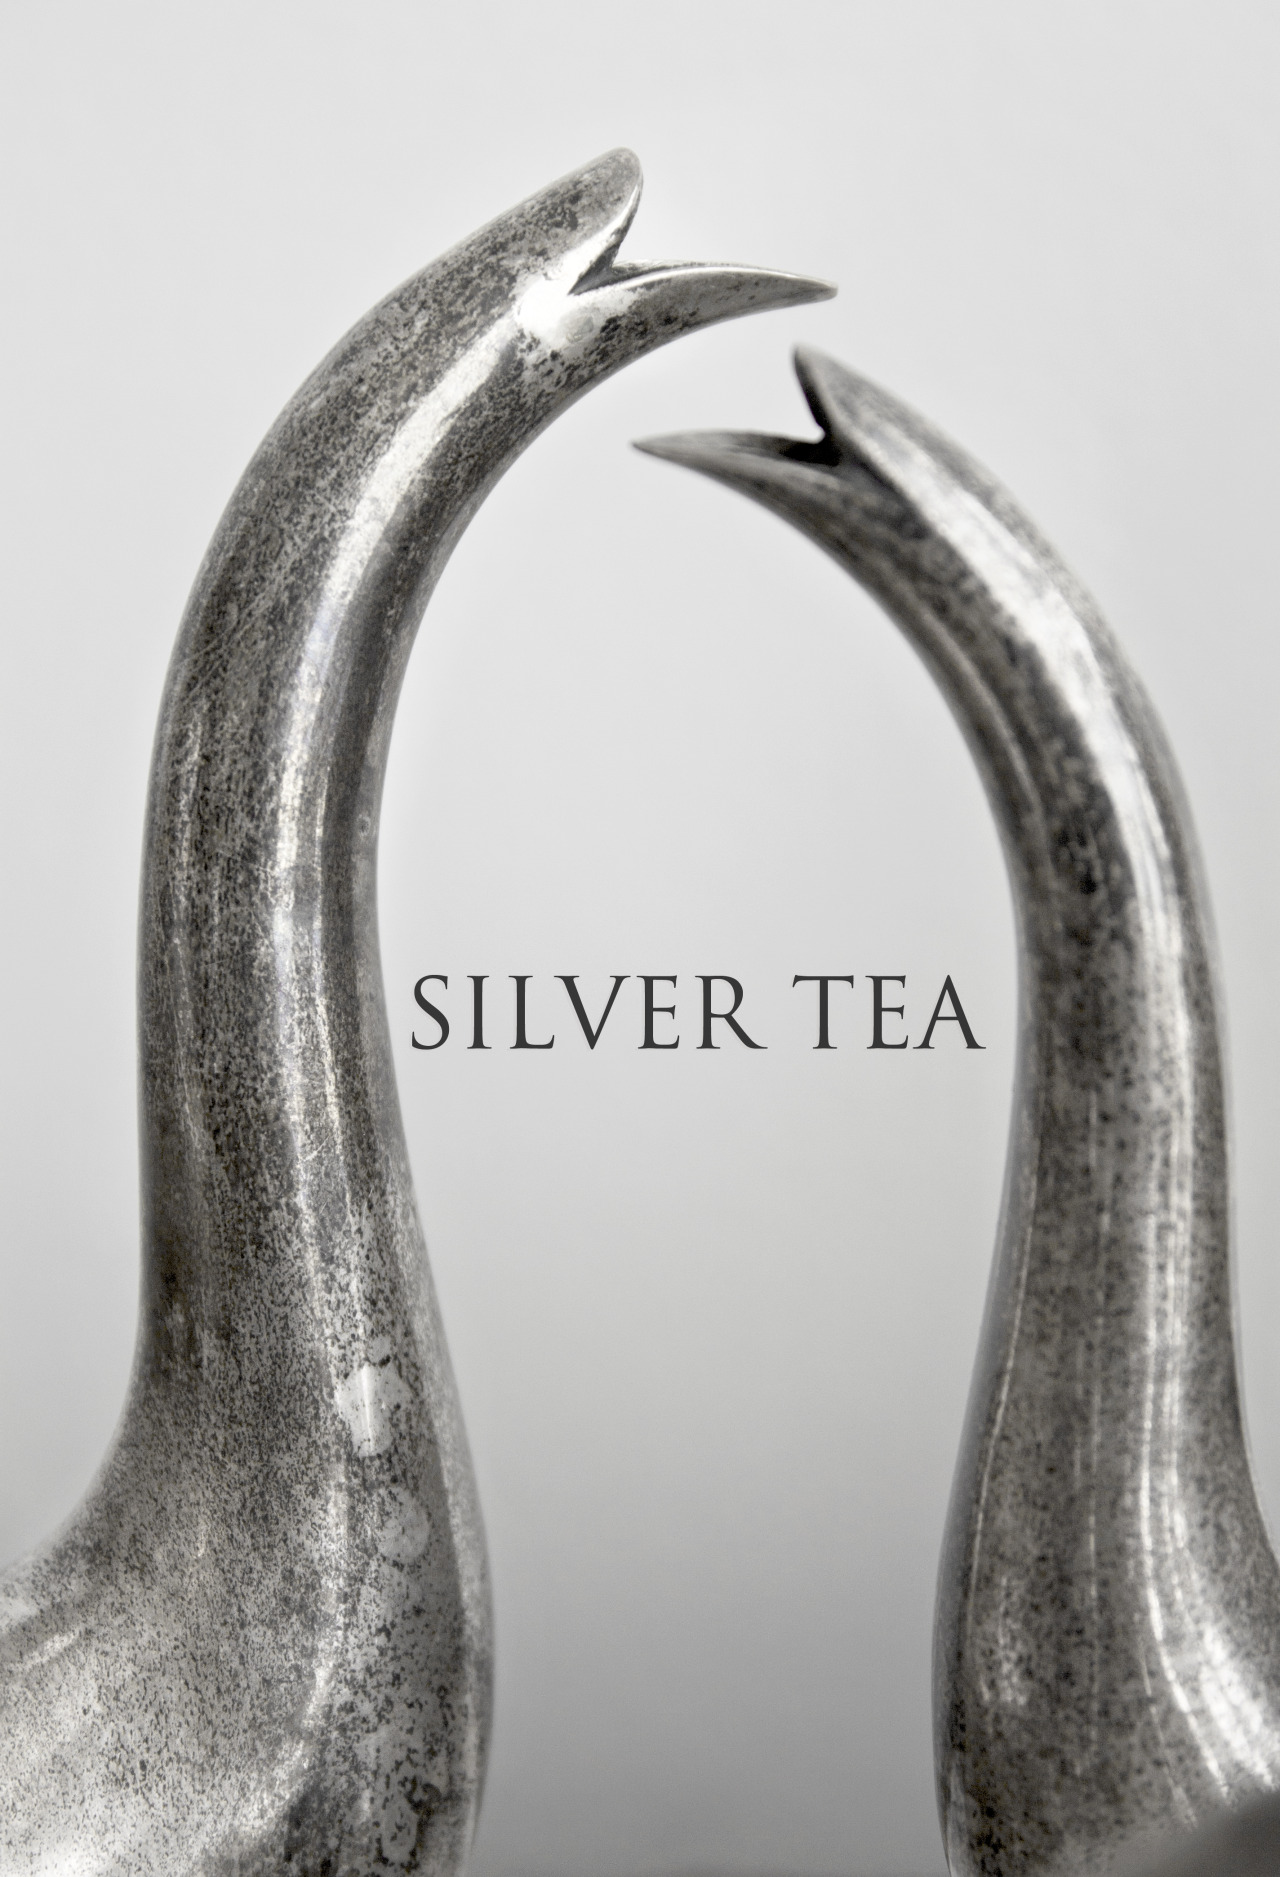 Silver Tea PH: Nicolas Cañon (Product Photography)